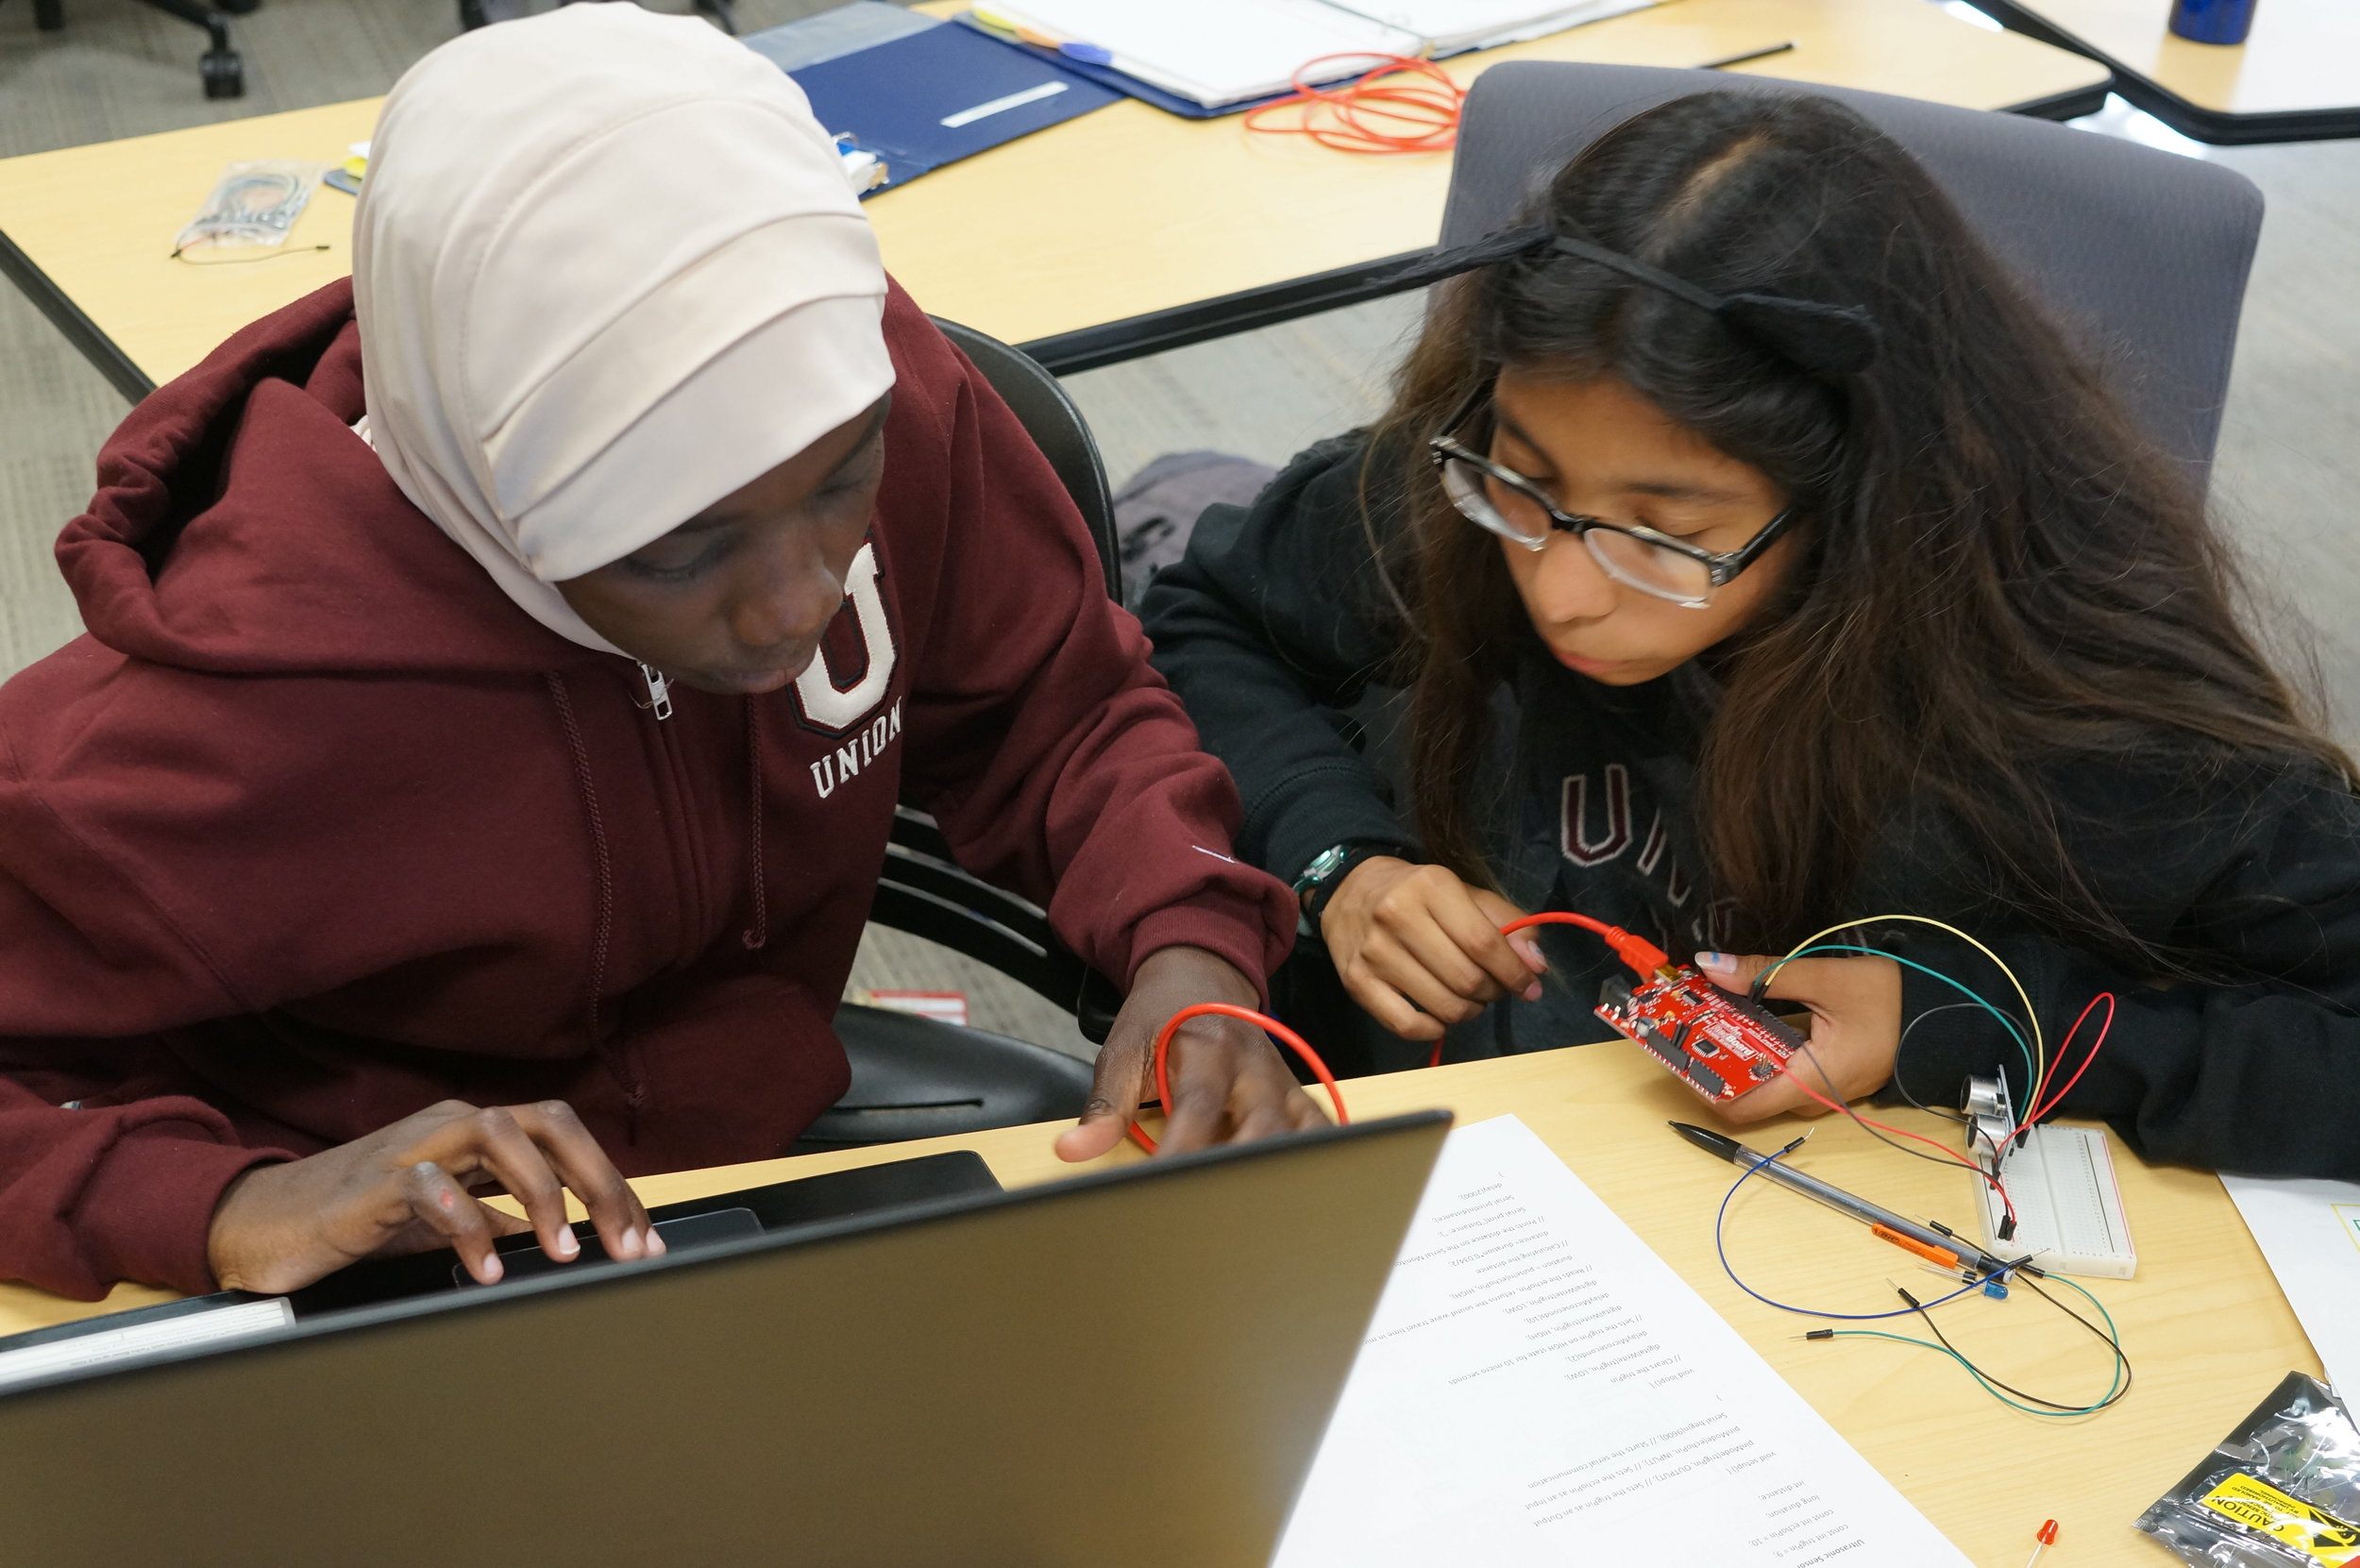 Zeina and Rose code together in Arduino.